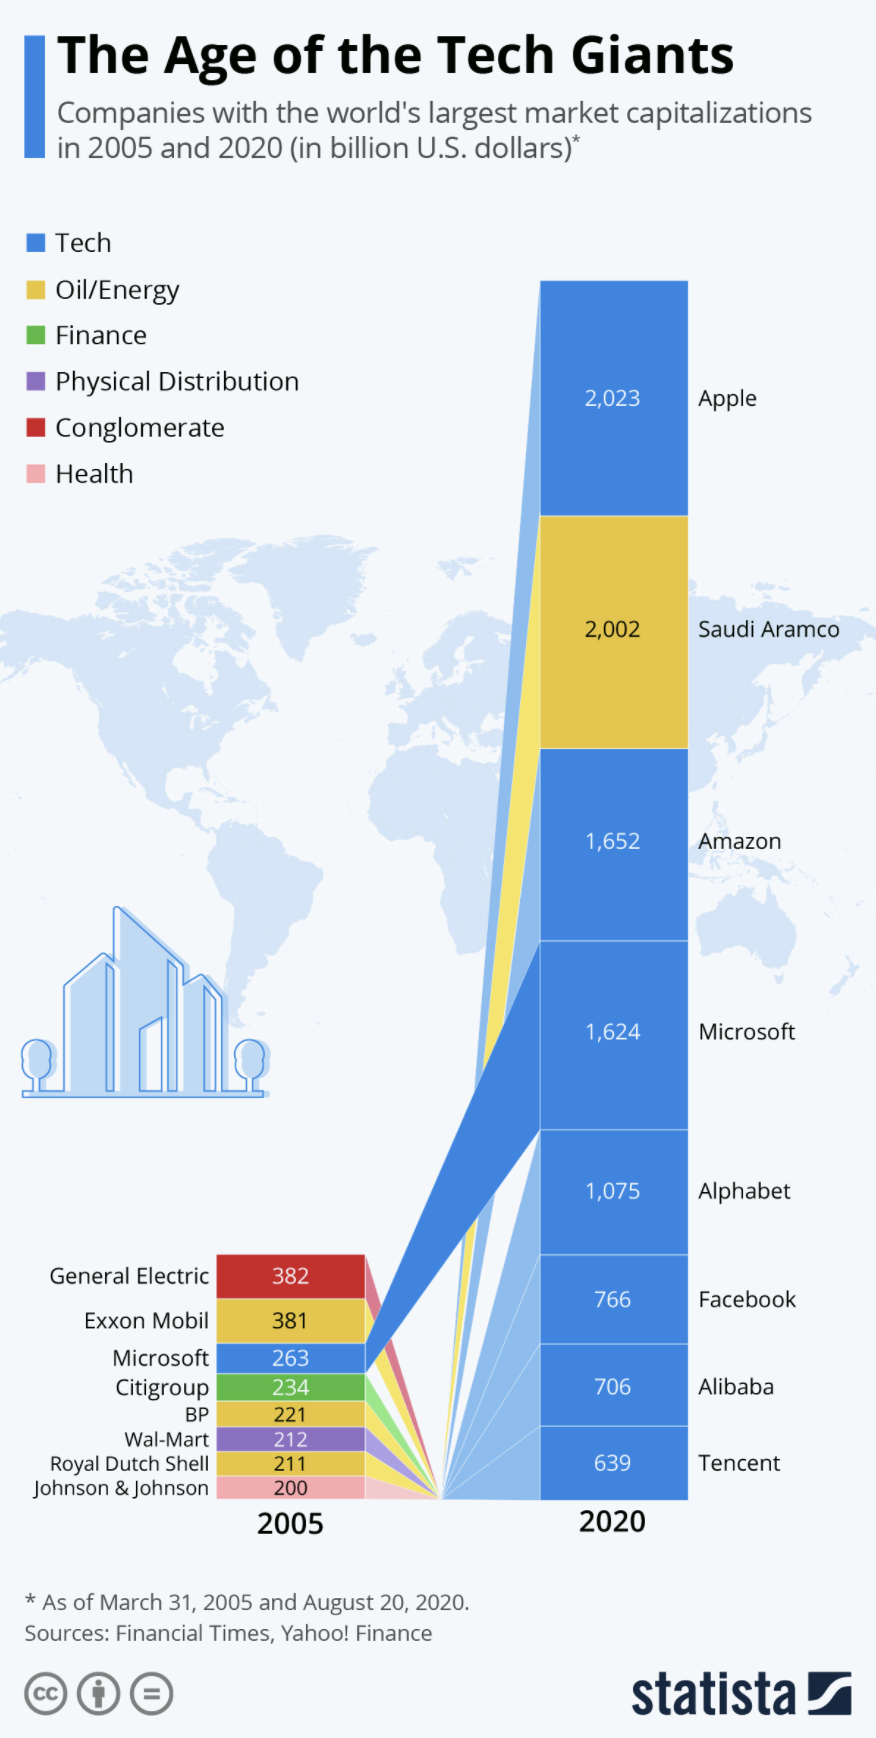 The age of tech giants